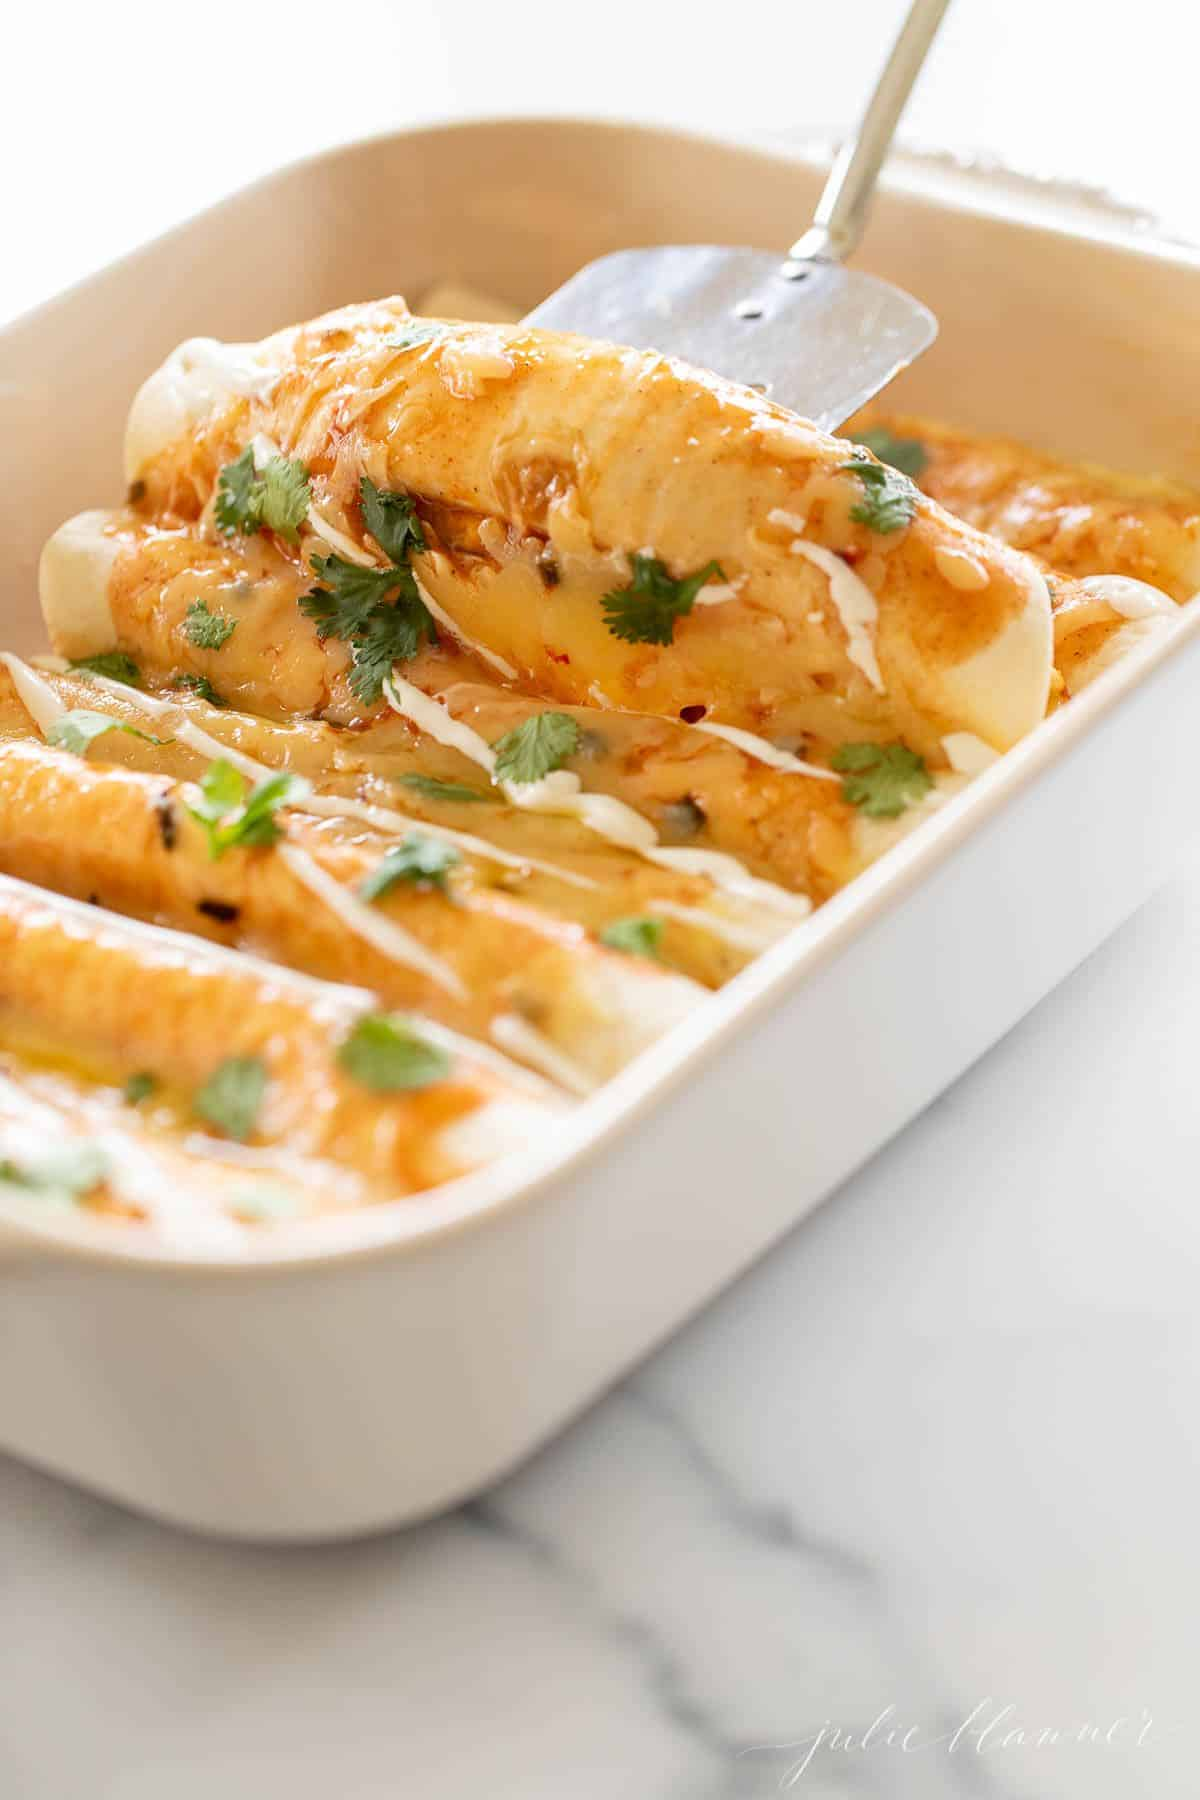 A white casserole dish filled with a cheese enchilada recipe.